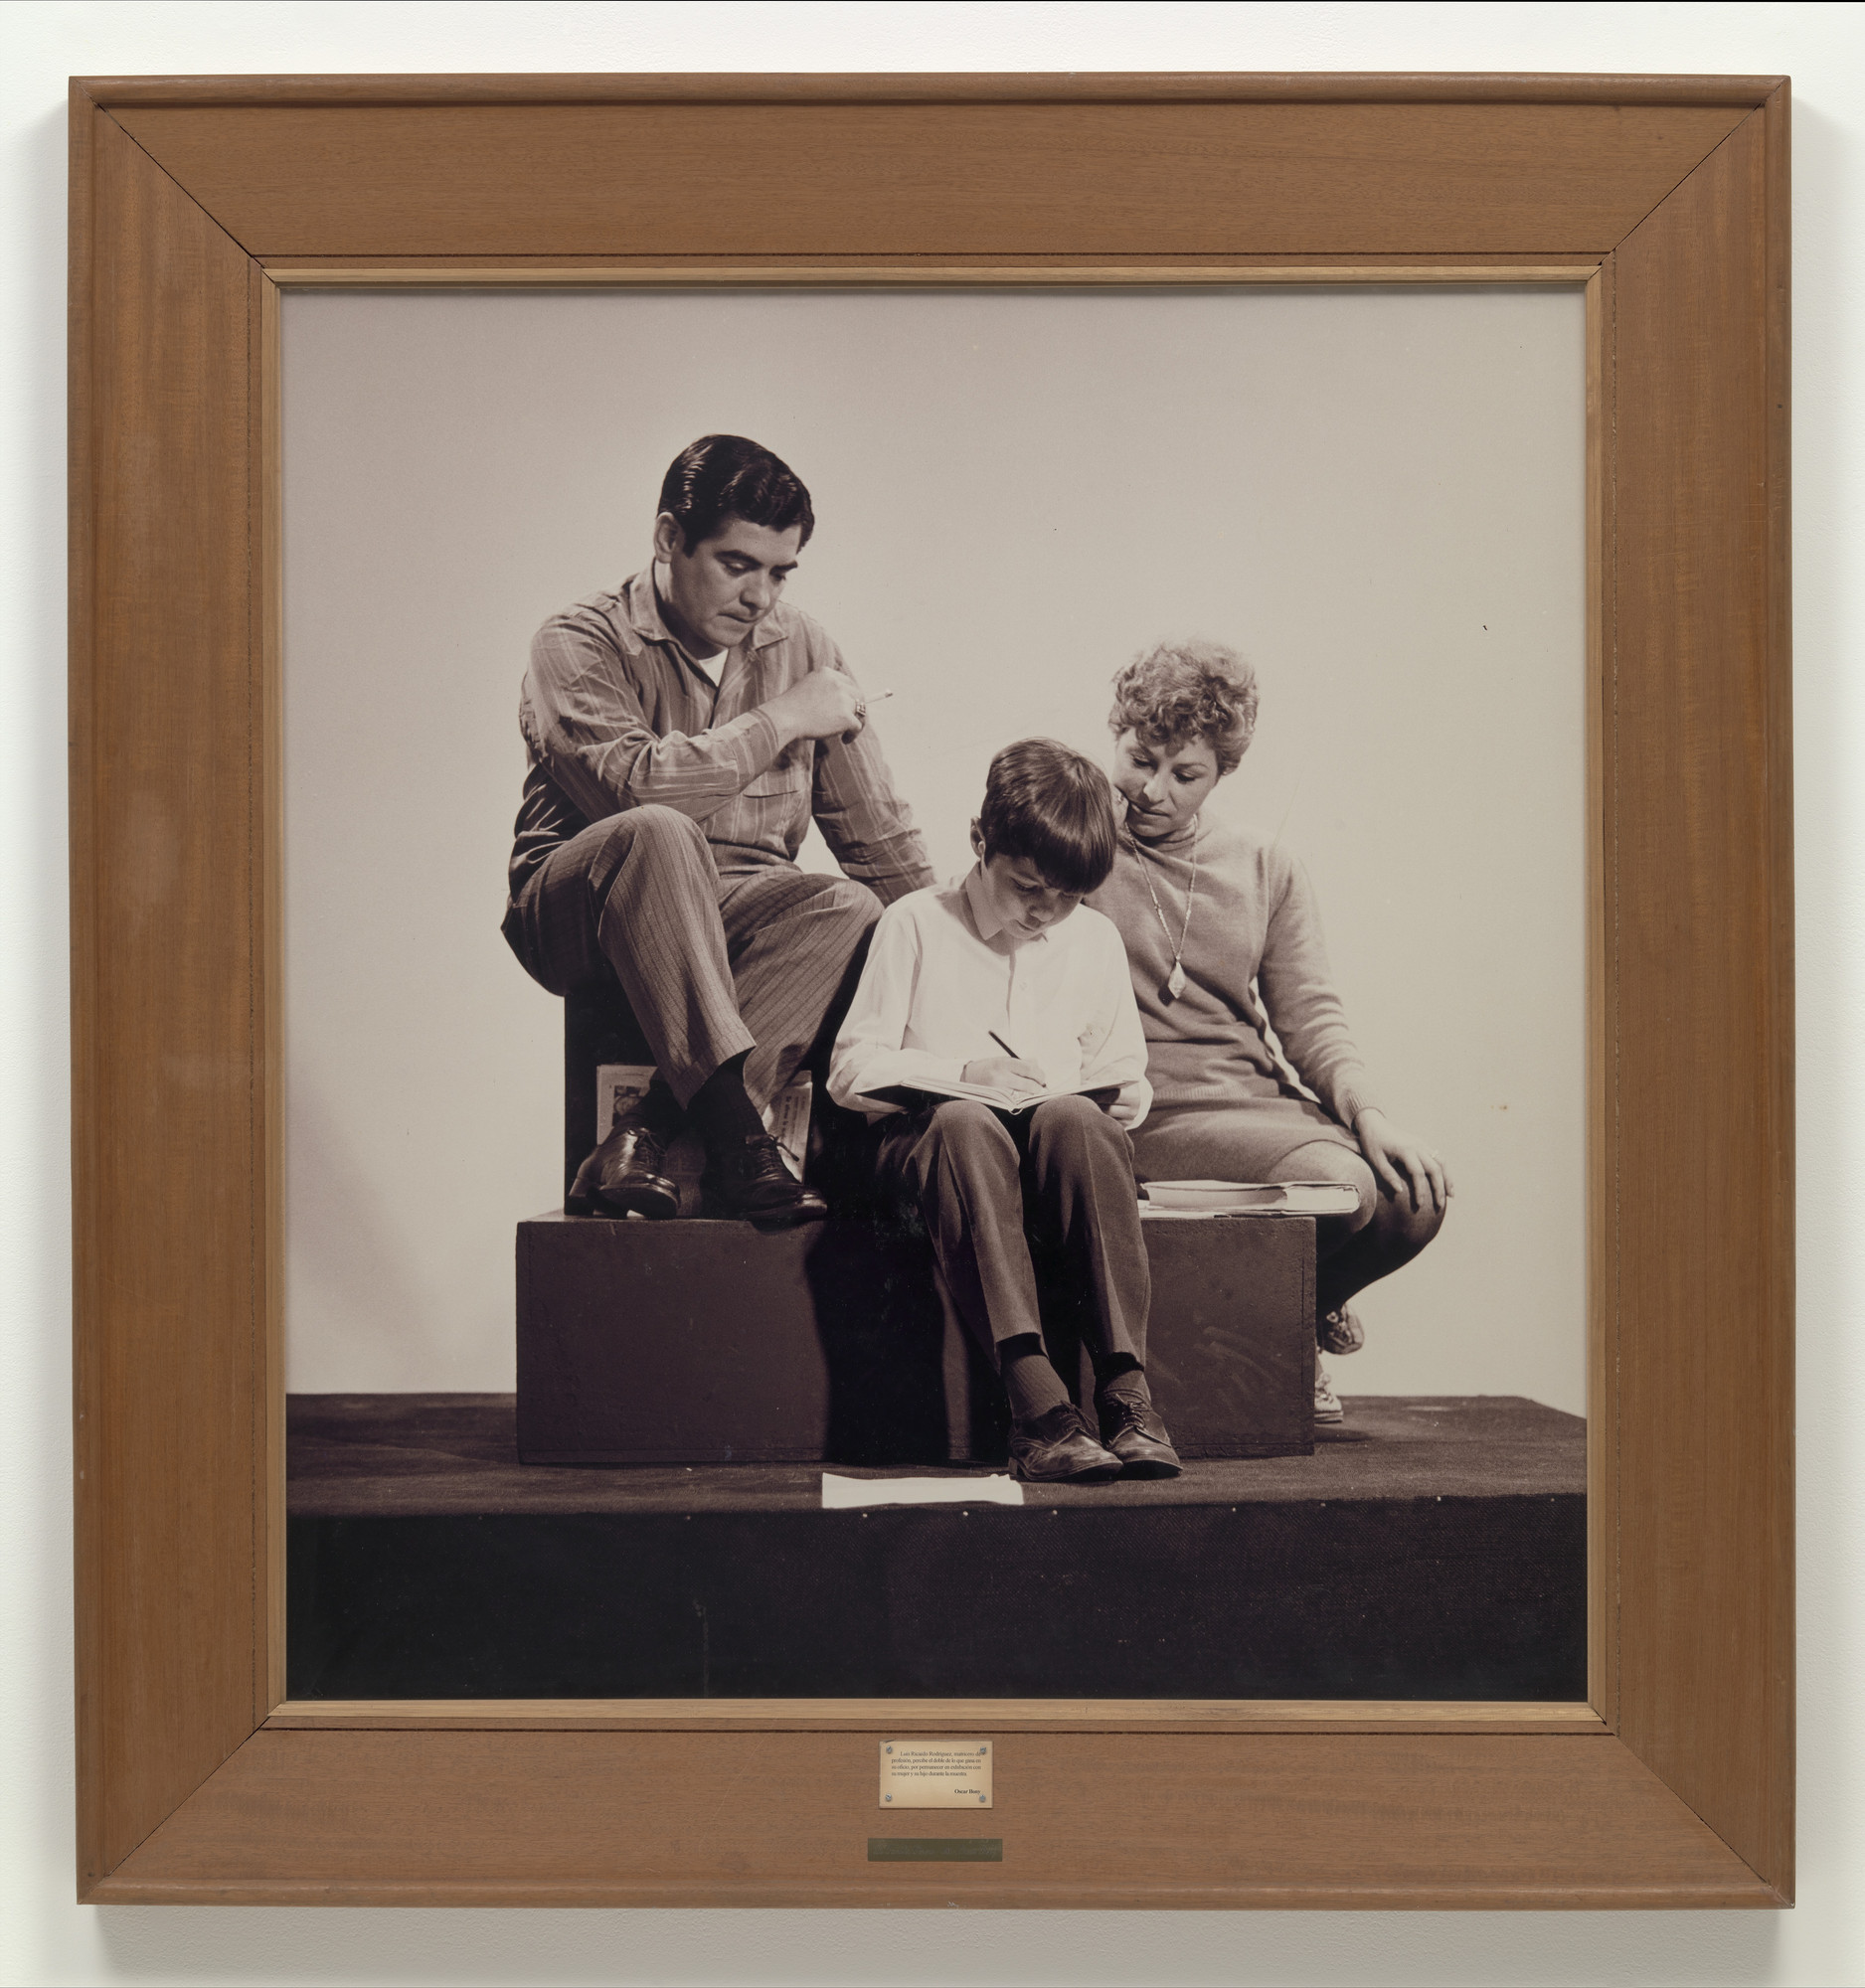 Oscar Bony. La Familia Obrera (The Working Class Family). 1968